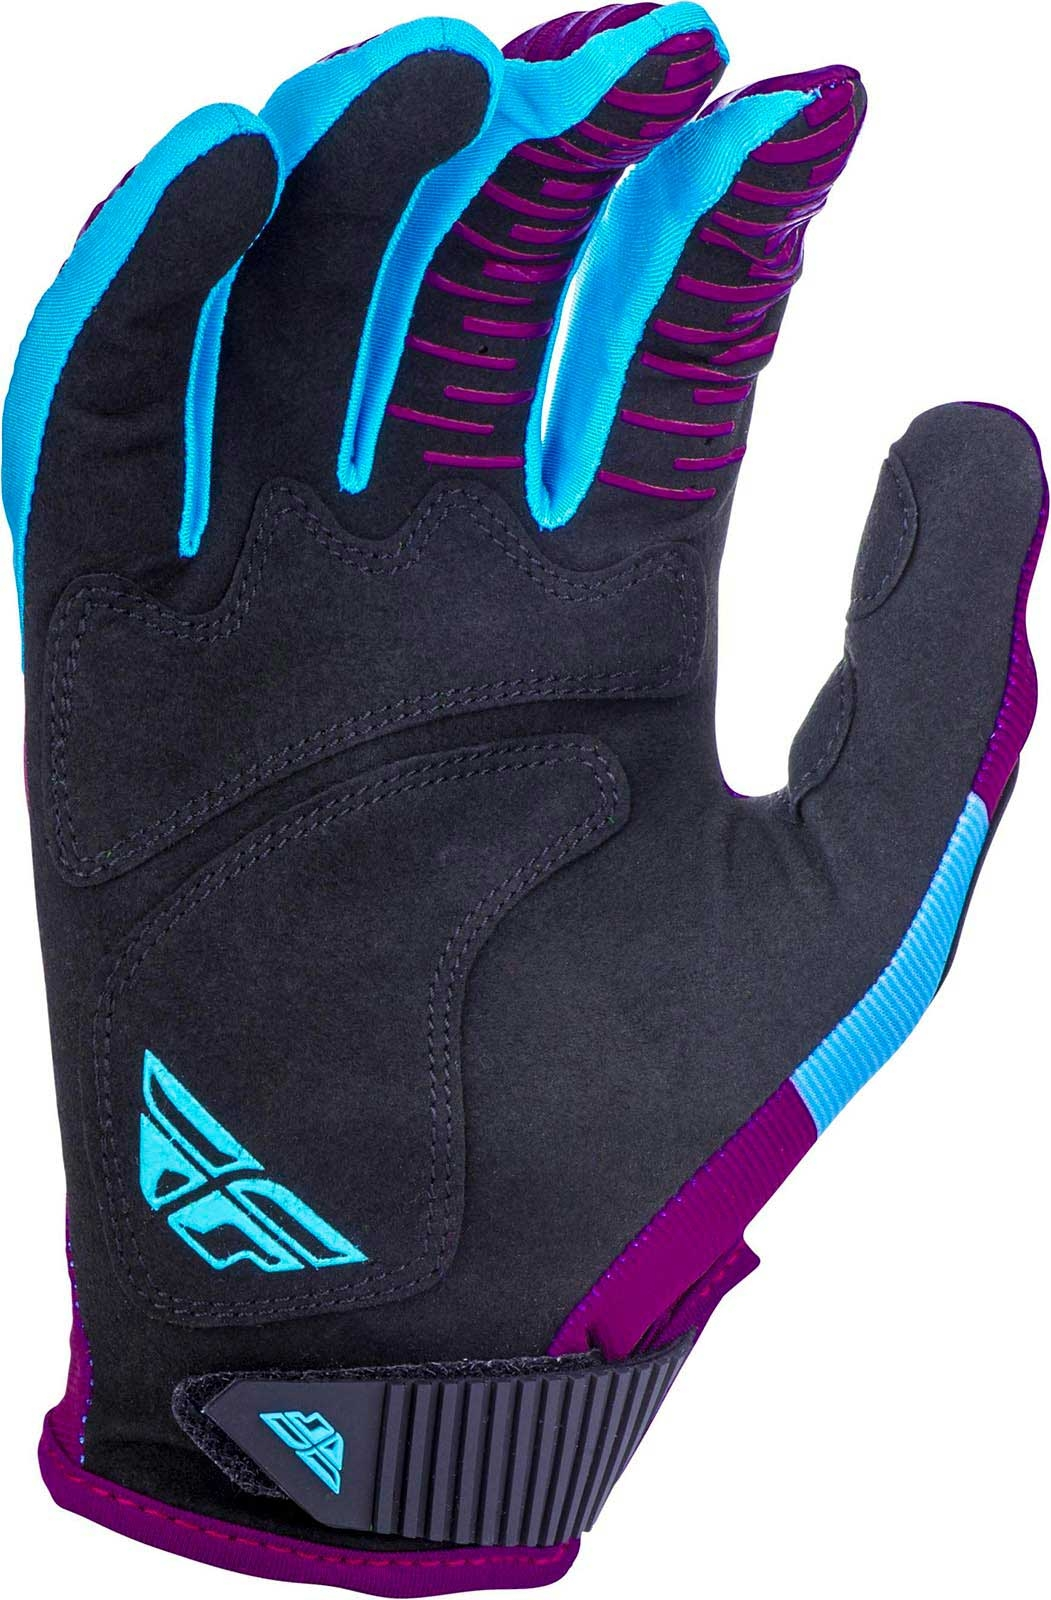 2019 Fly Racing Kinetic Shield Gloves Motocross Dirtbike Offroad ATV Mens